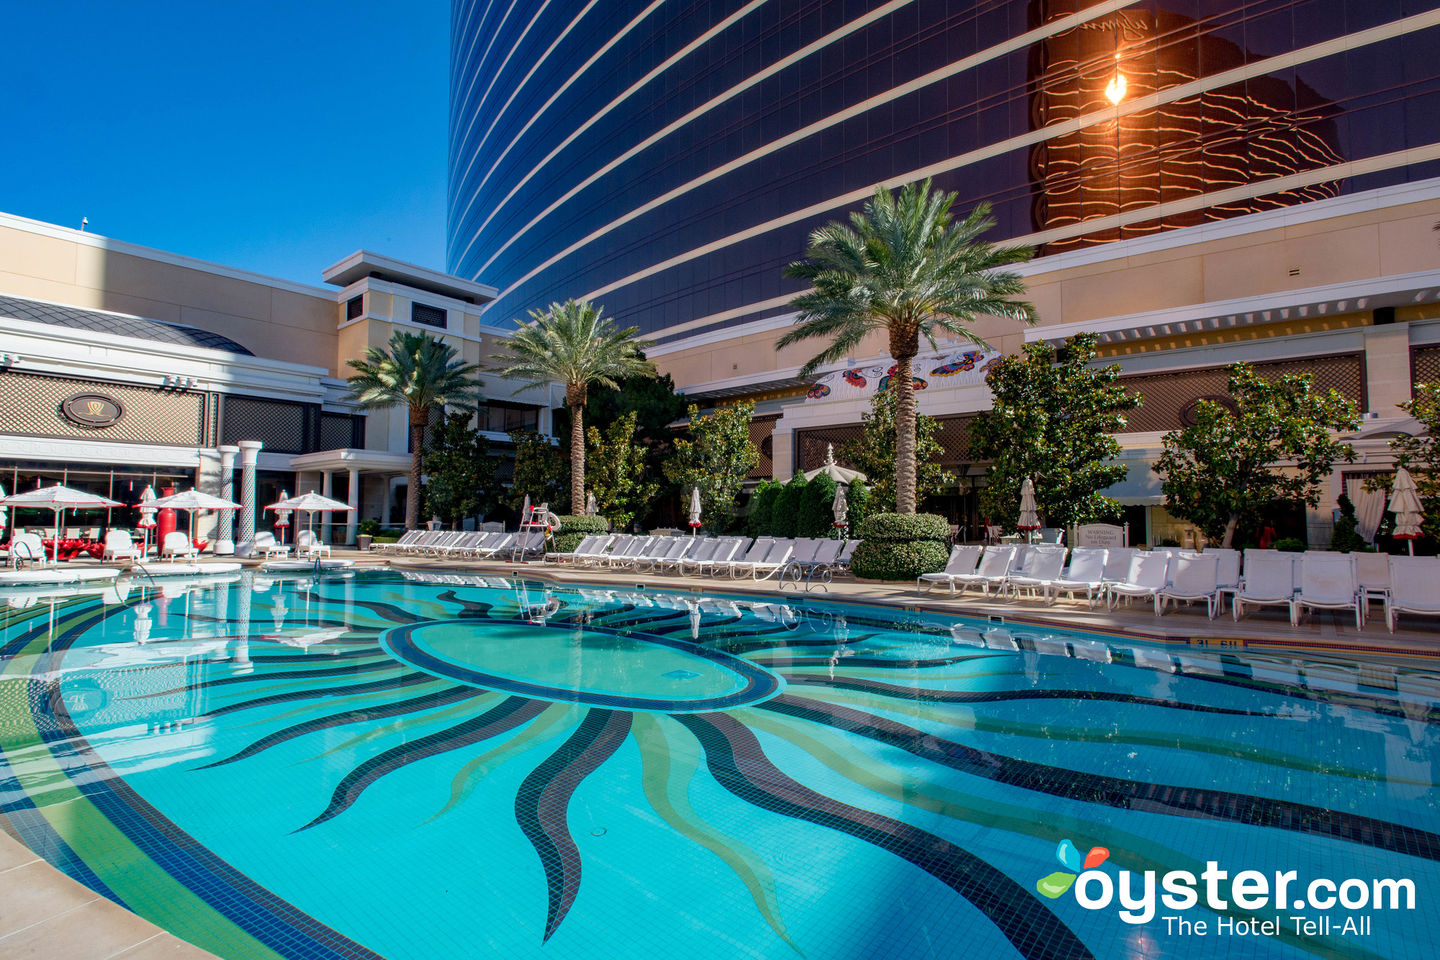 The Best Luxury Hotels in Las Vegas (updated 2019) | Oyster com